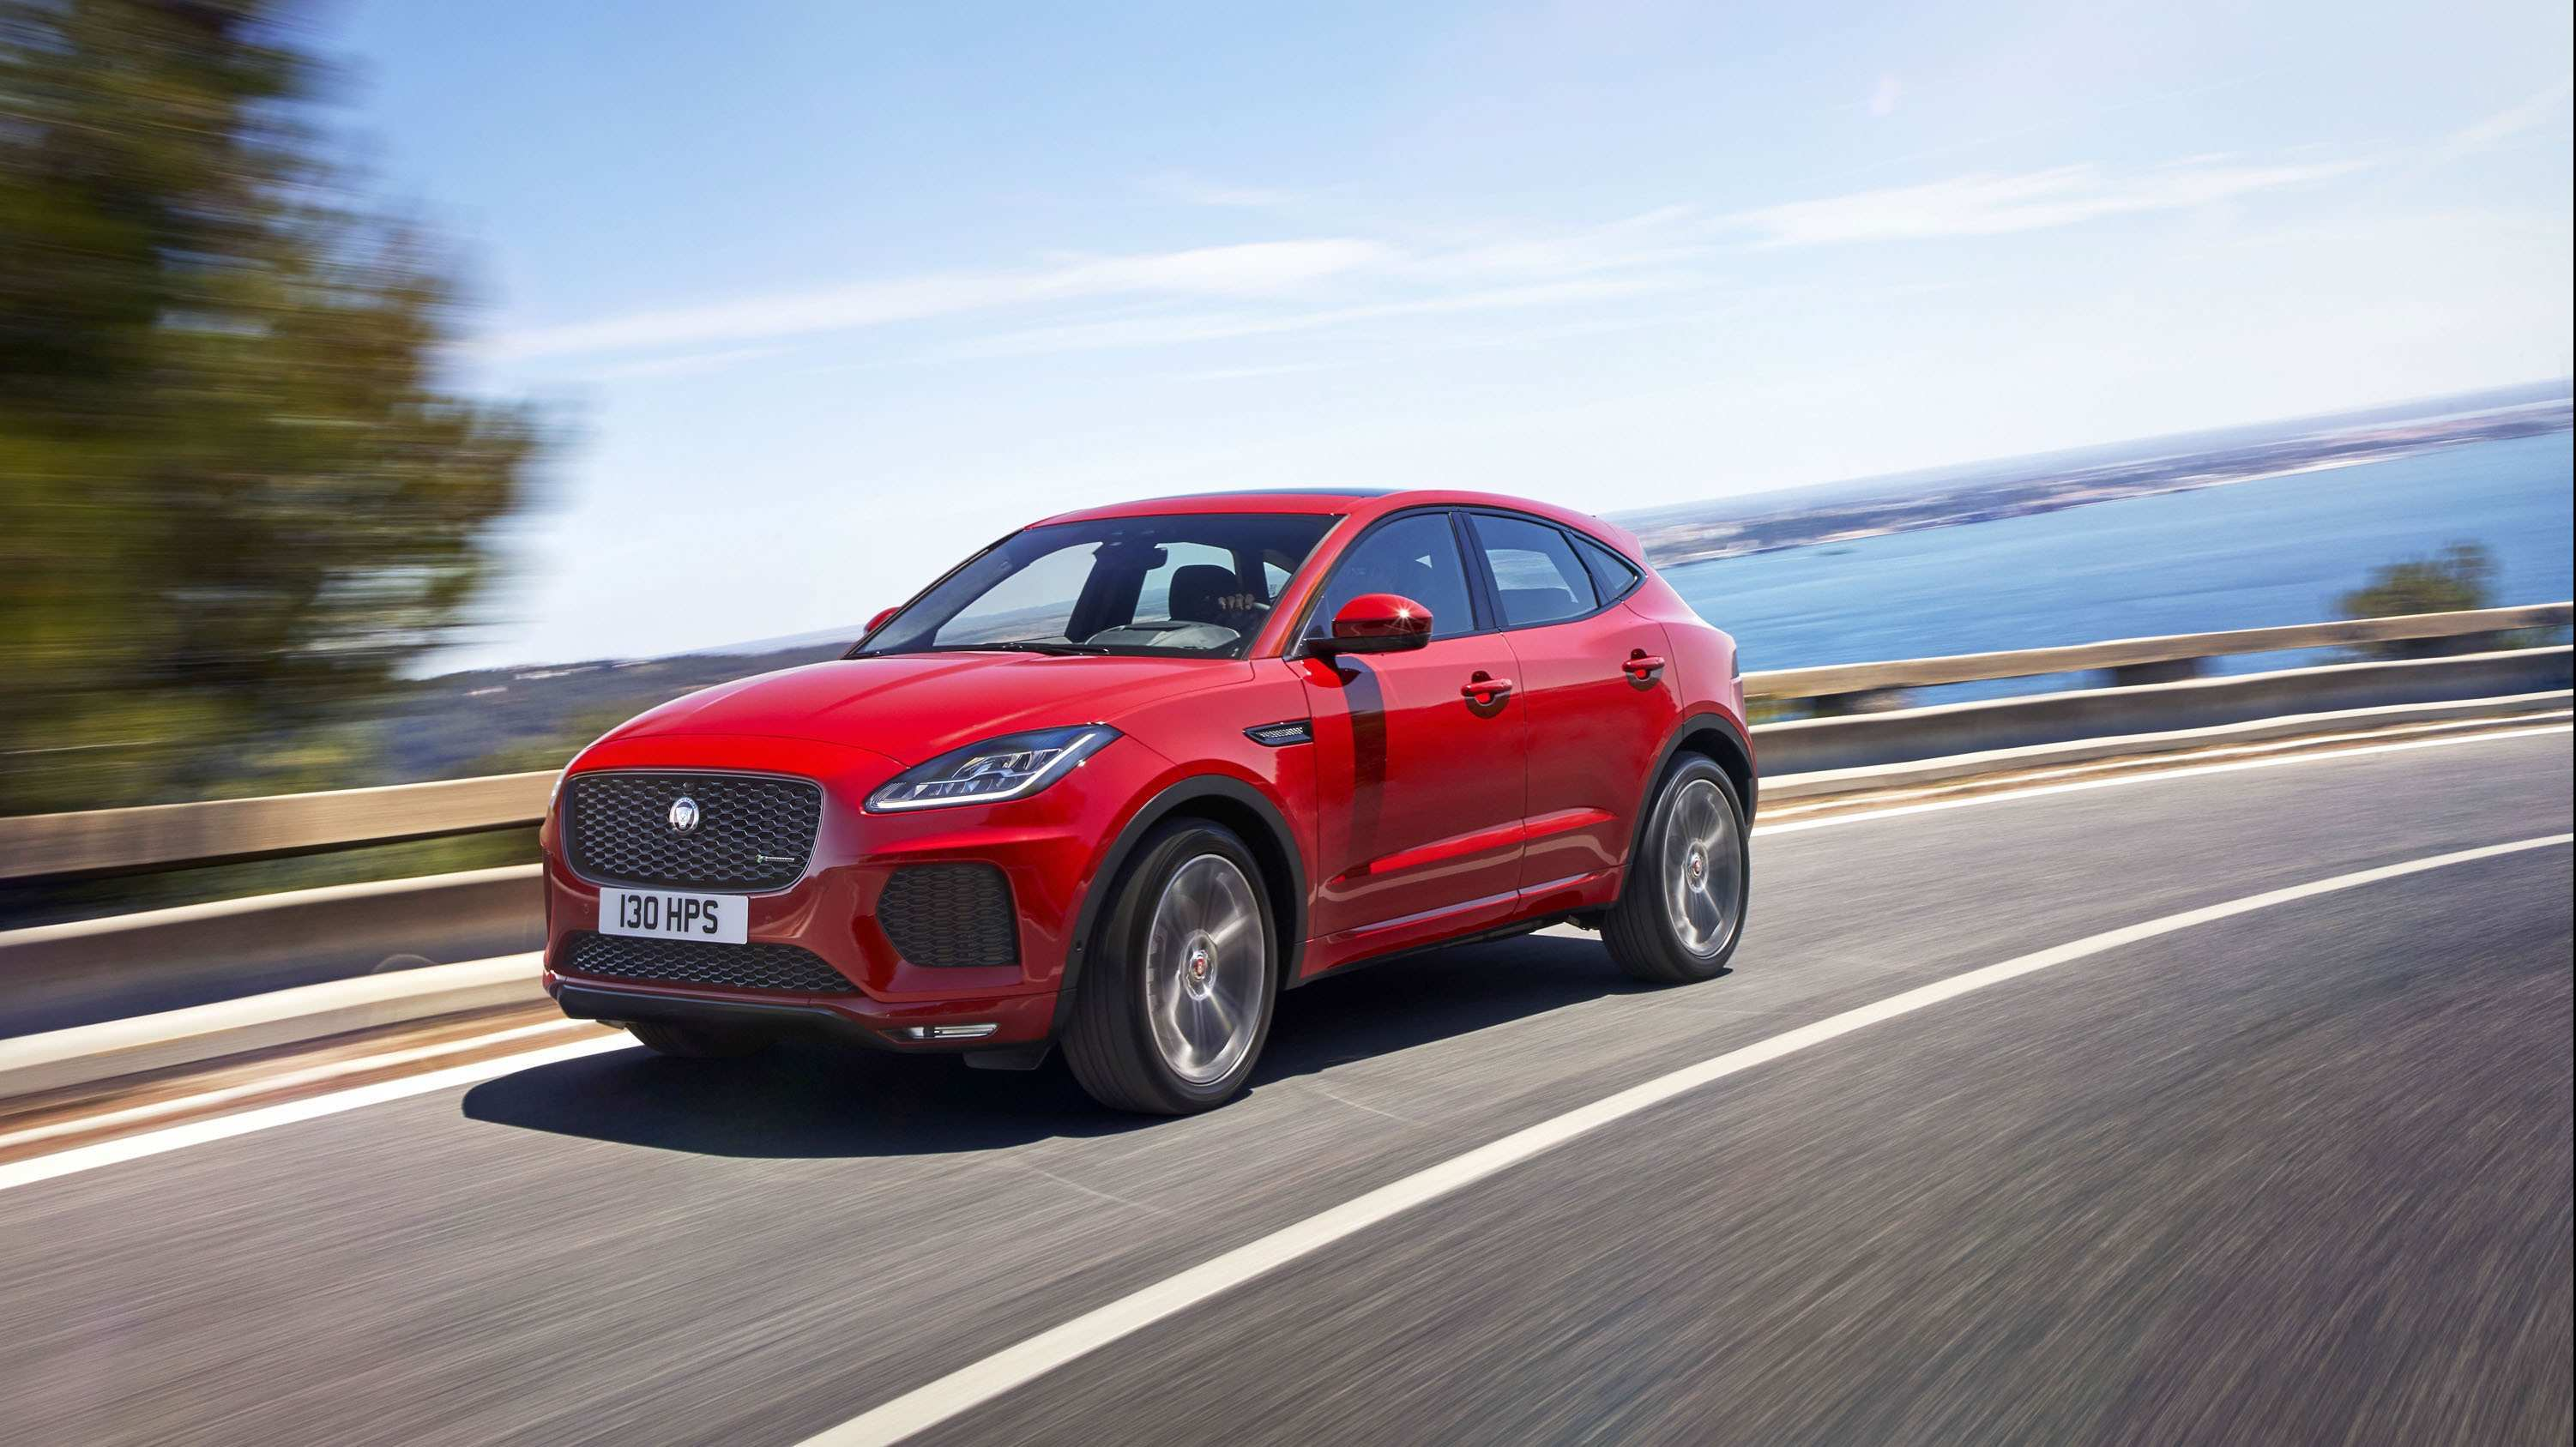 20 Gallery of 2020 Jaguar Crossover Images with 2020 Jaguar Crossover